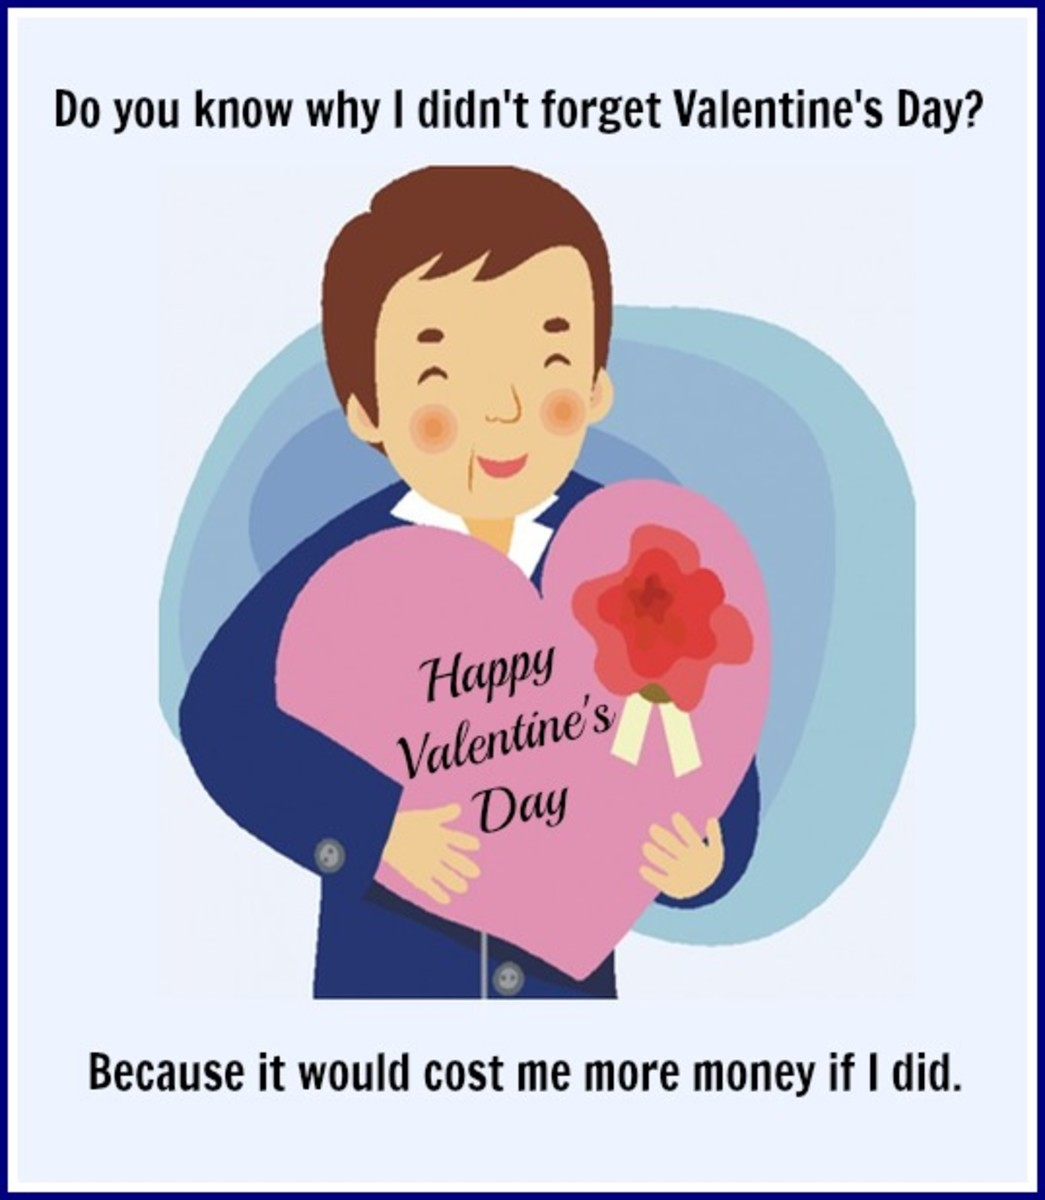 Funny Valentine's Day Card for Men to Give